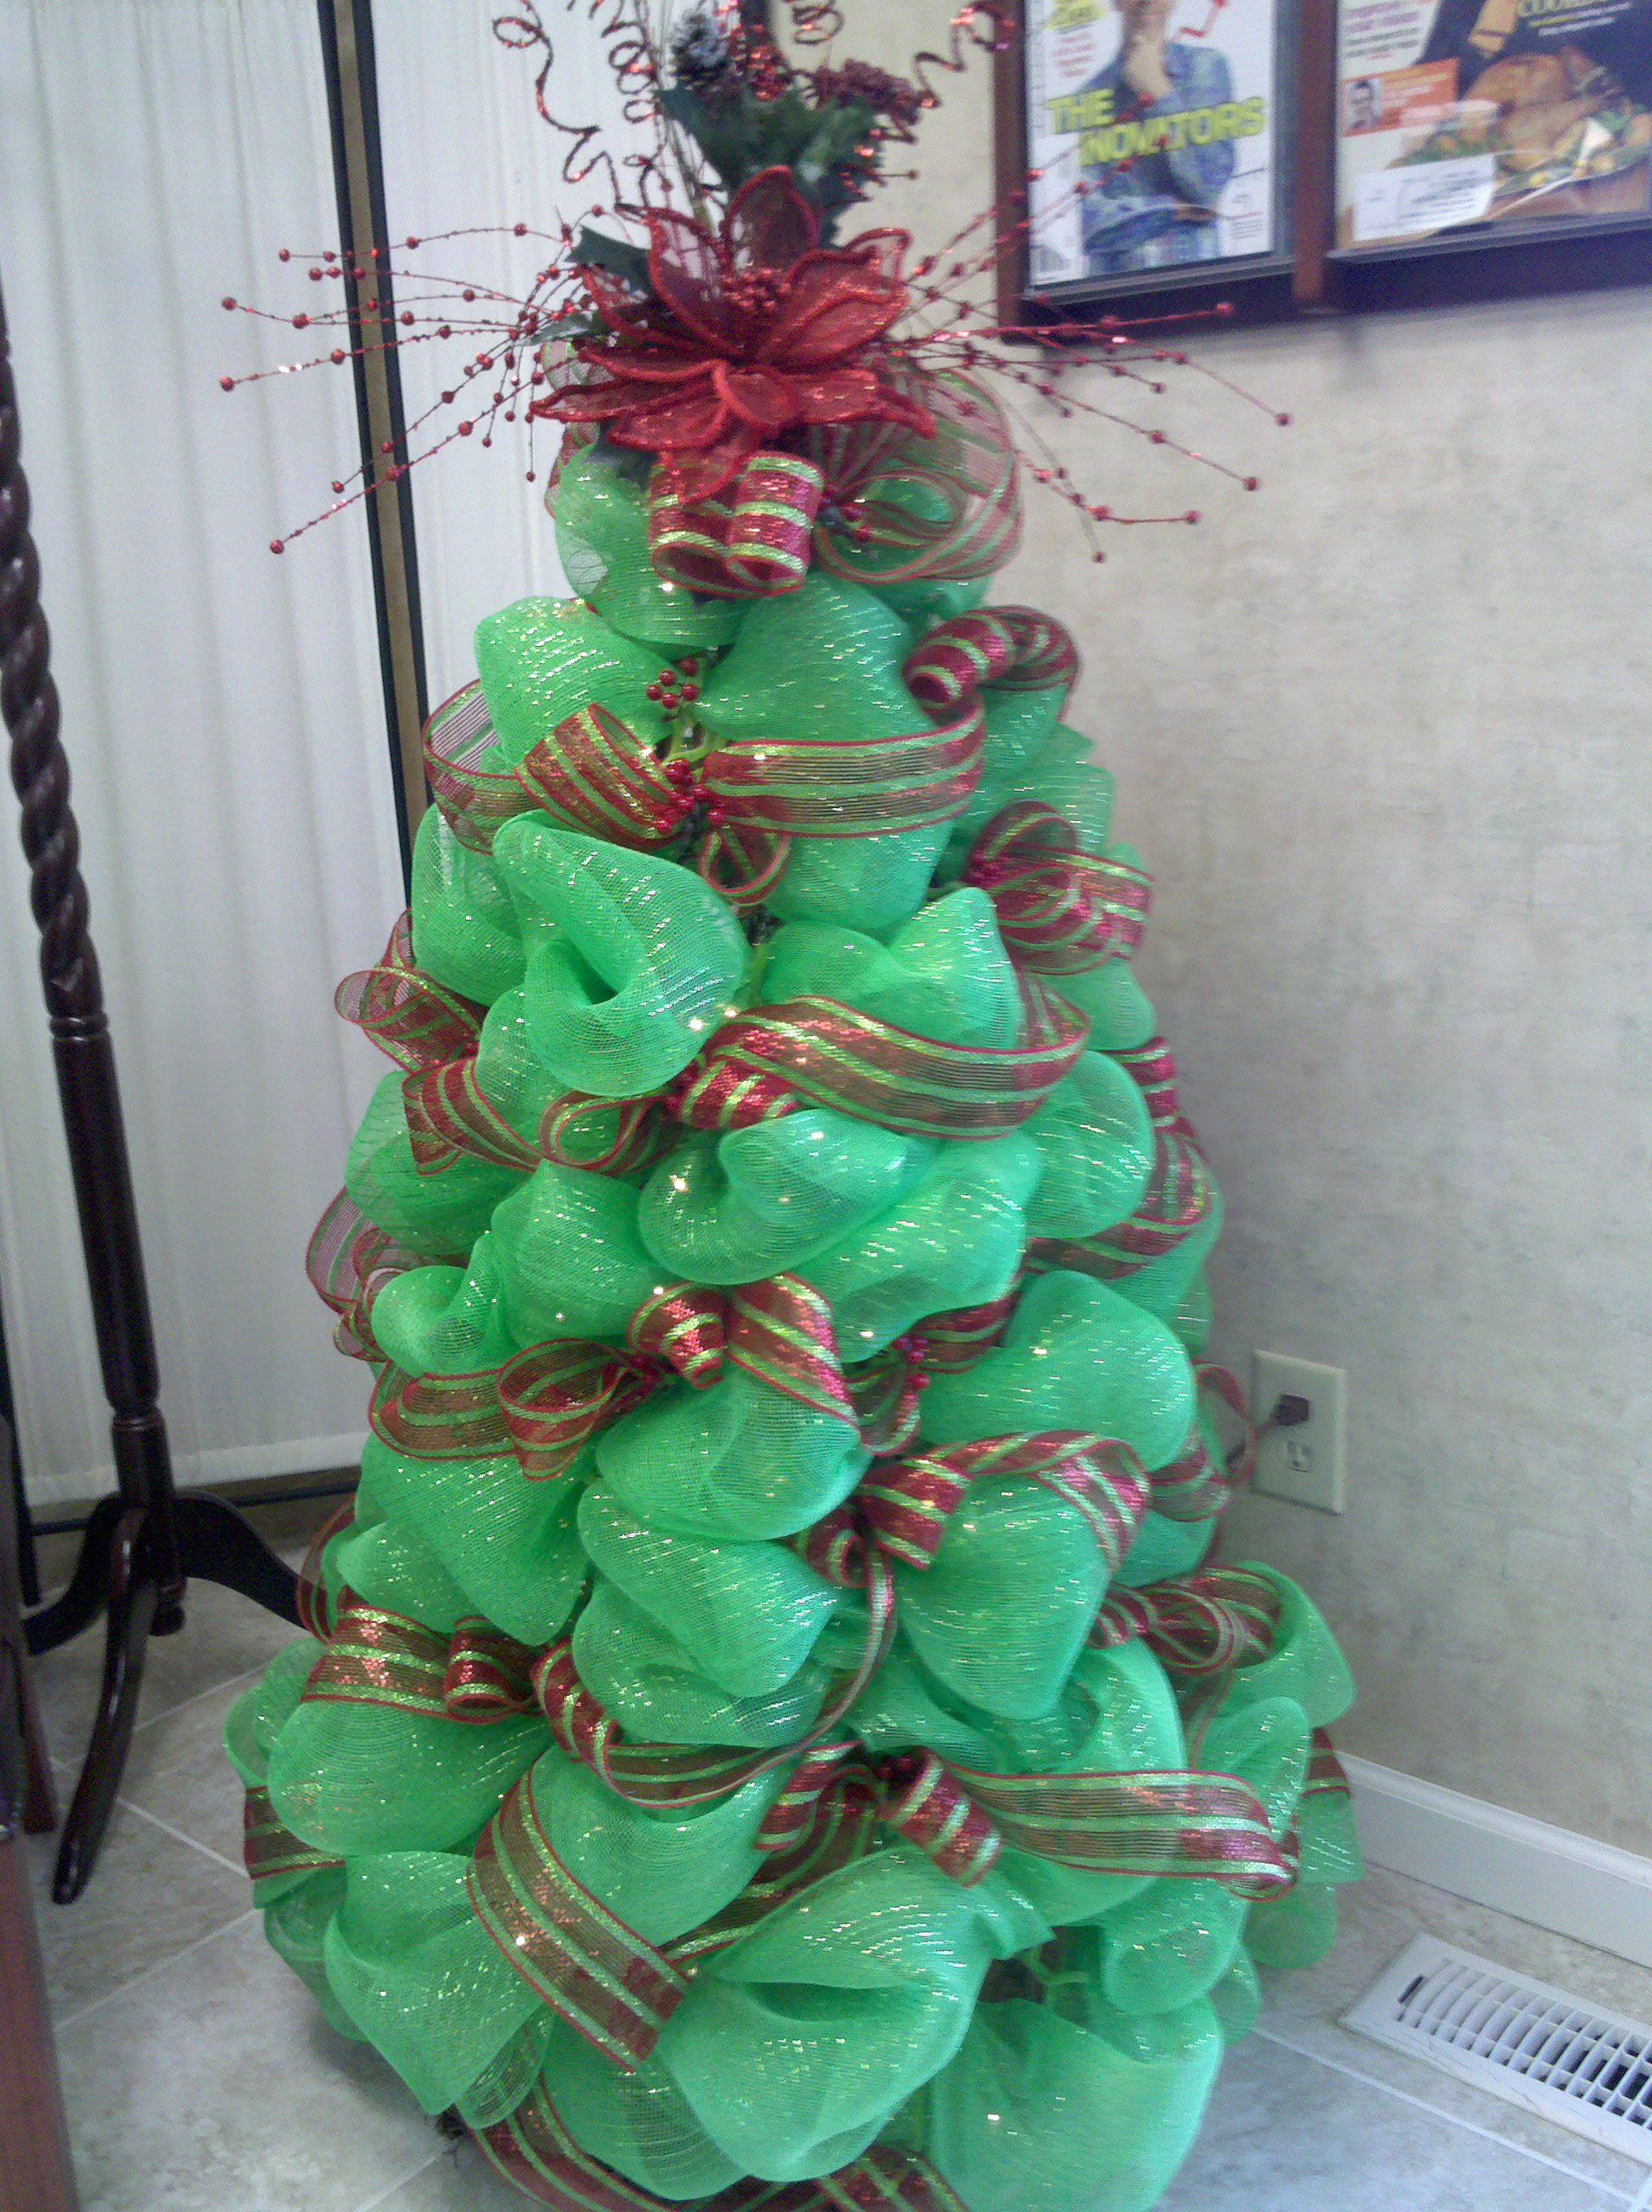 How To Decorate Christmas Tree With Poly Mesh Ribbon : Deco mesh christmas tree so much fun to make wreaths